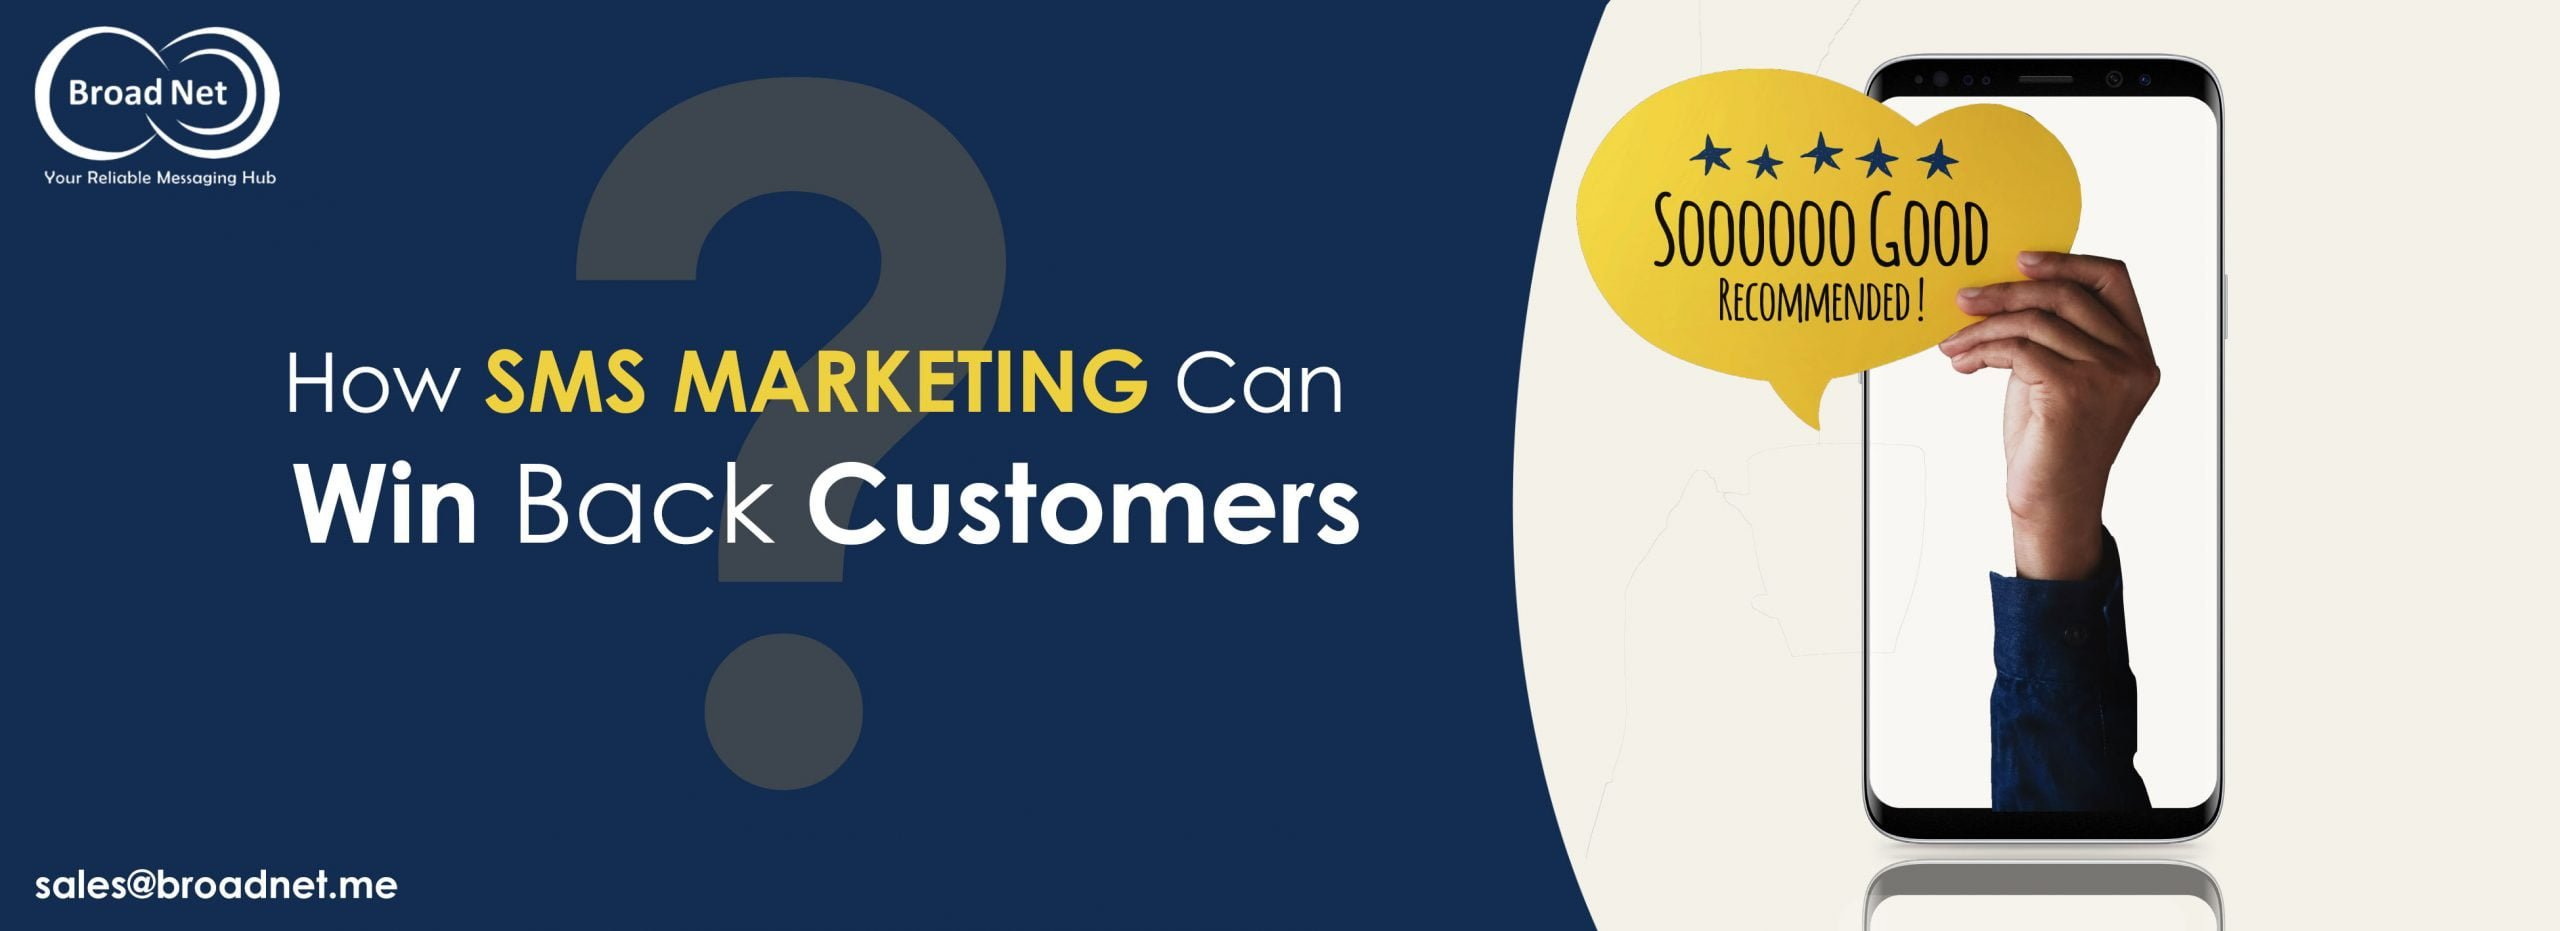 HOW SMS MARKETING CAN WIN BACK CUSTOMERS